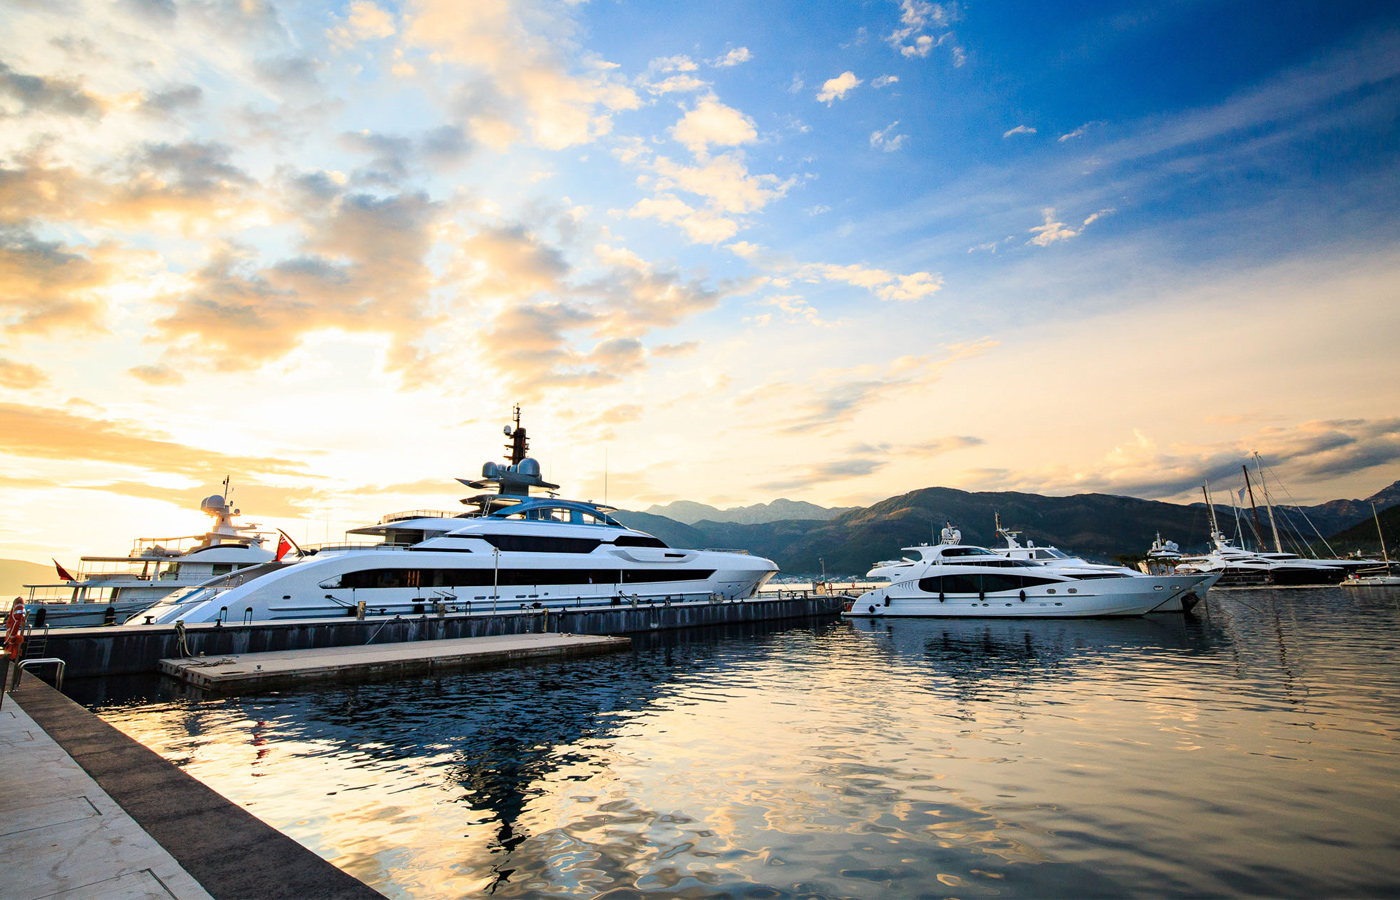 5 Impressive Yachts Owned by Celebrities